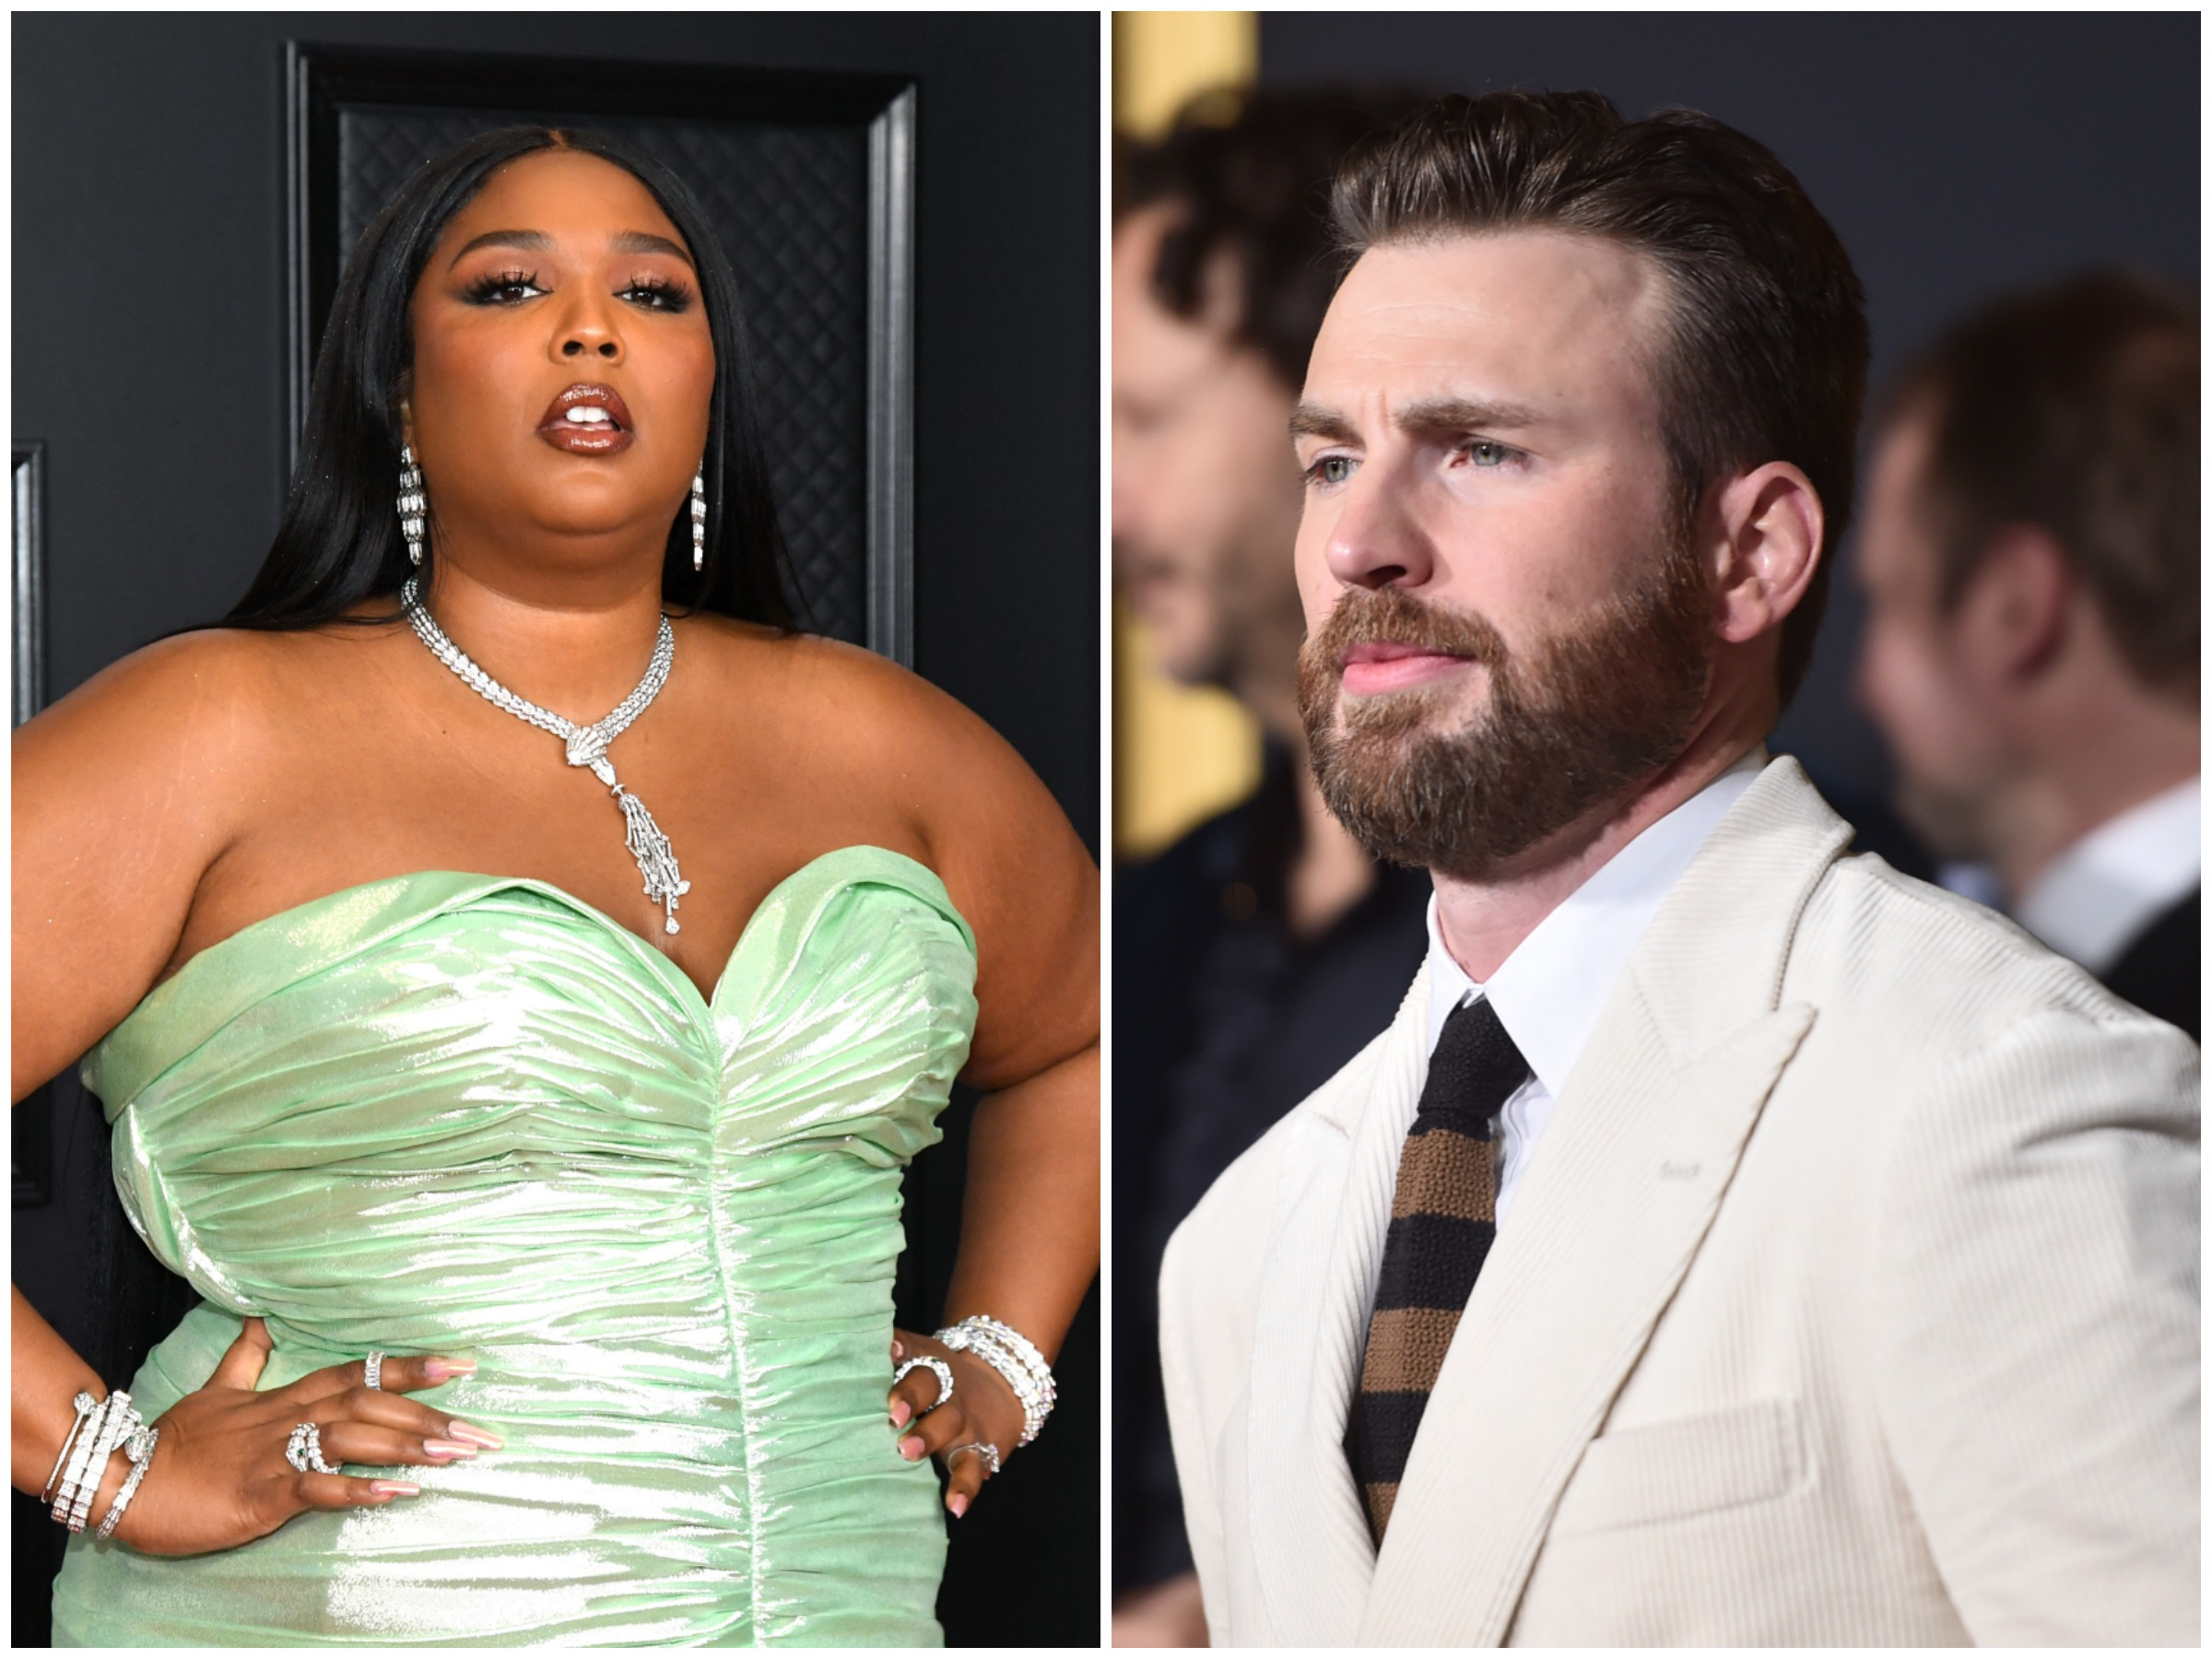 How Chris Evans Responded to Lizzo's Drunk DM